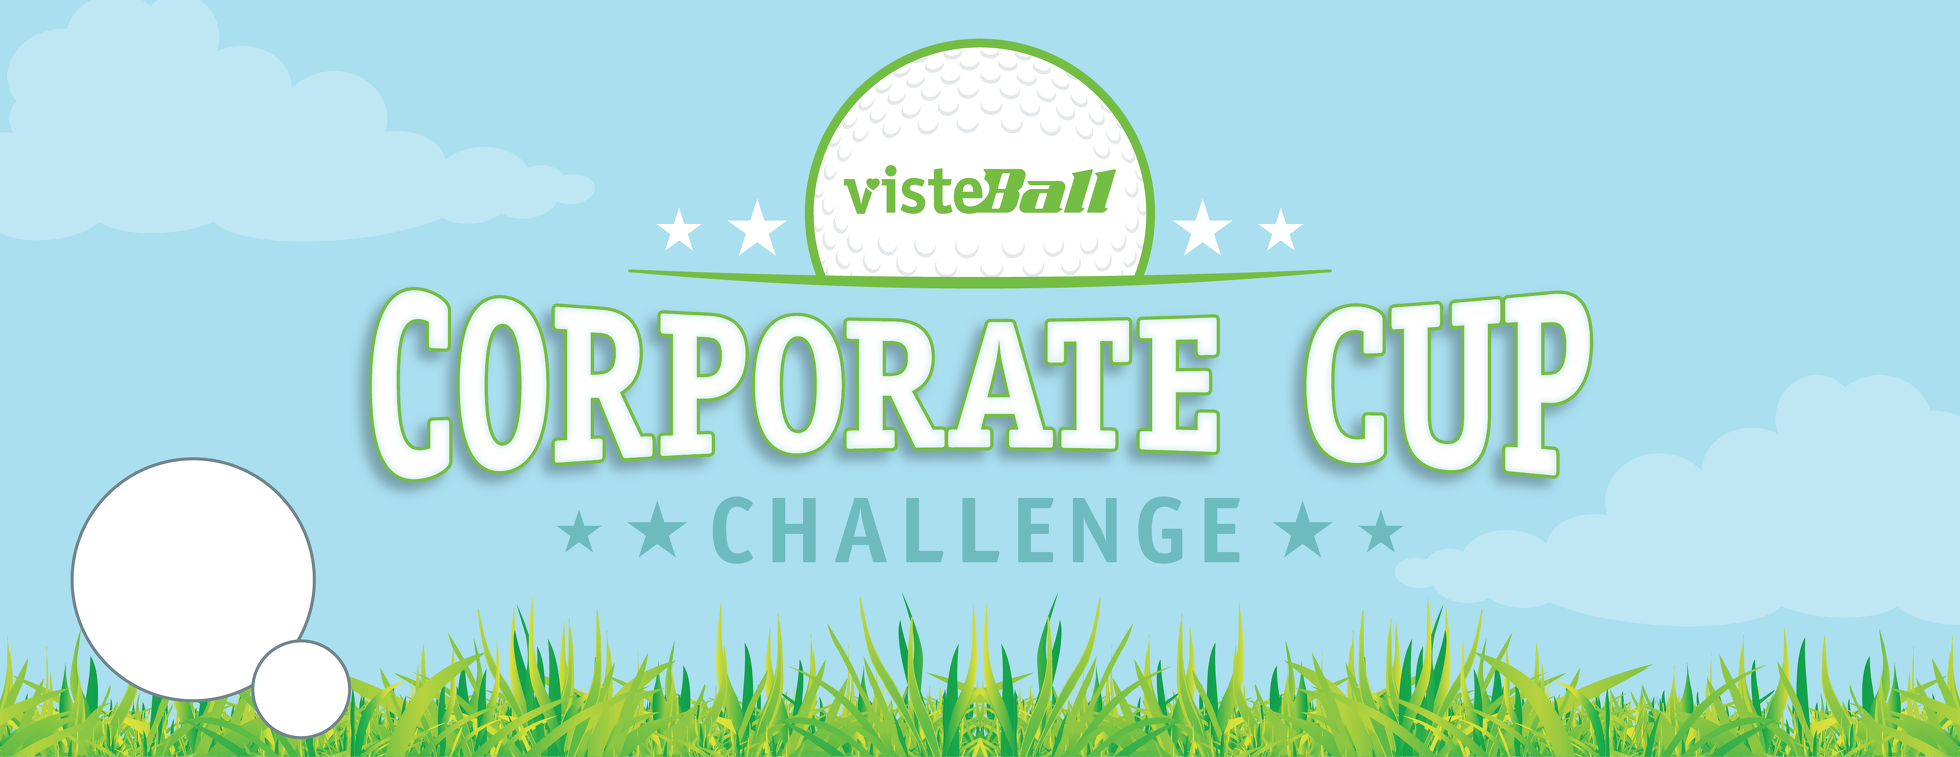 VISTEBall Corporate Cup Challenge 2020